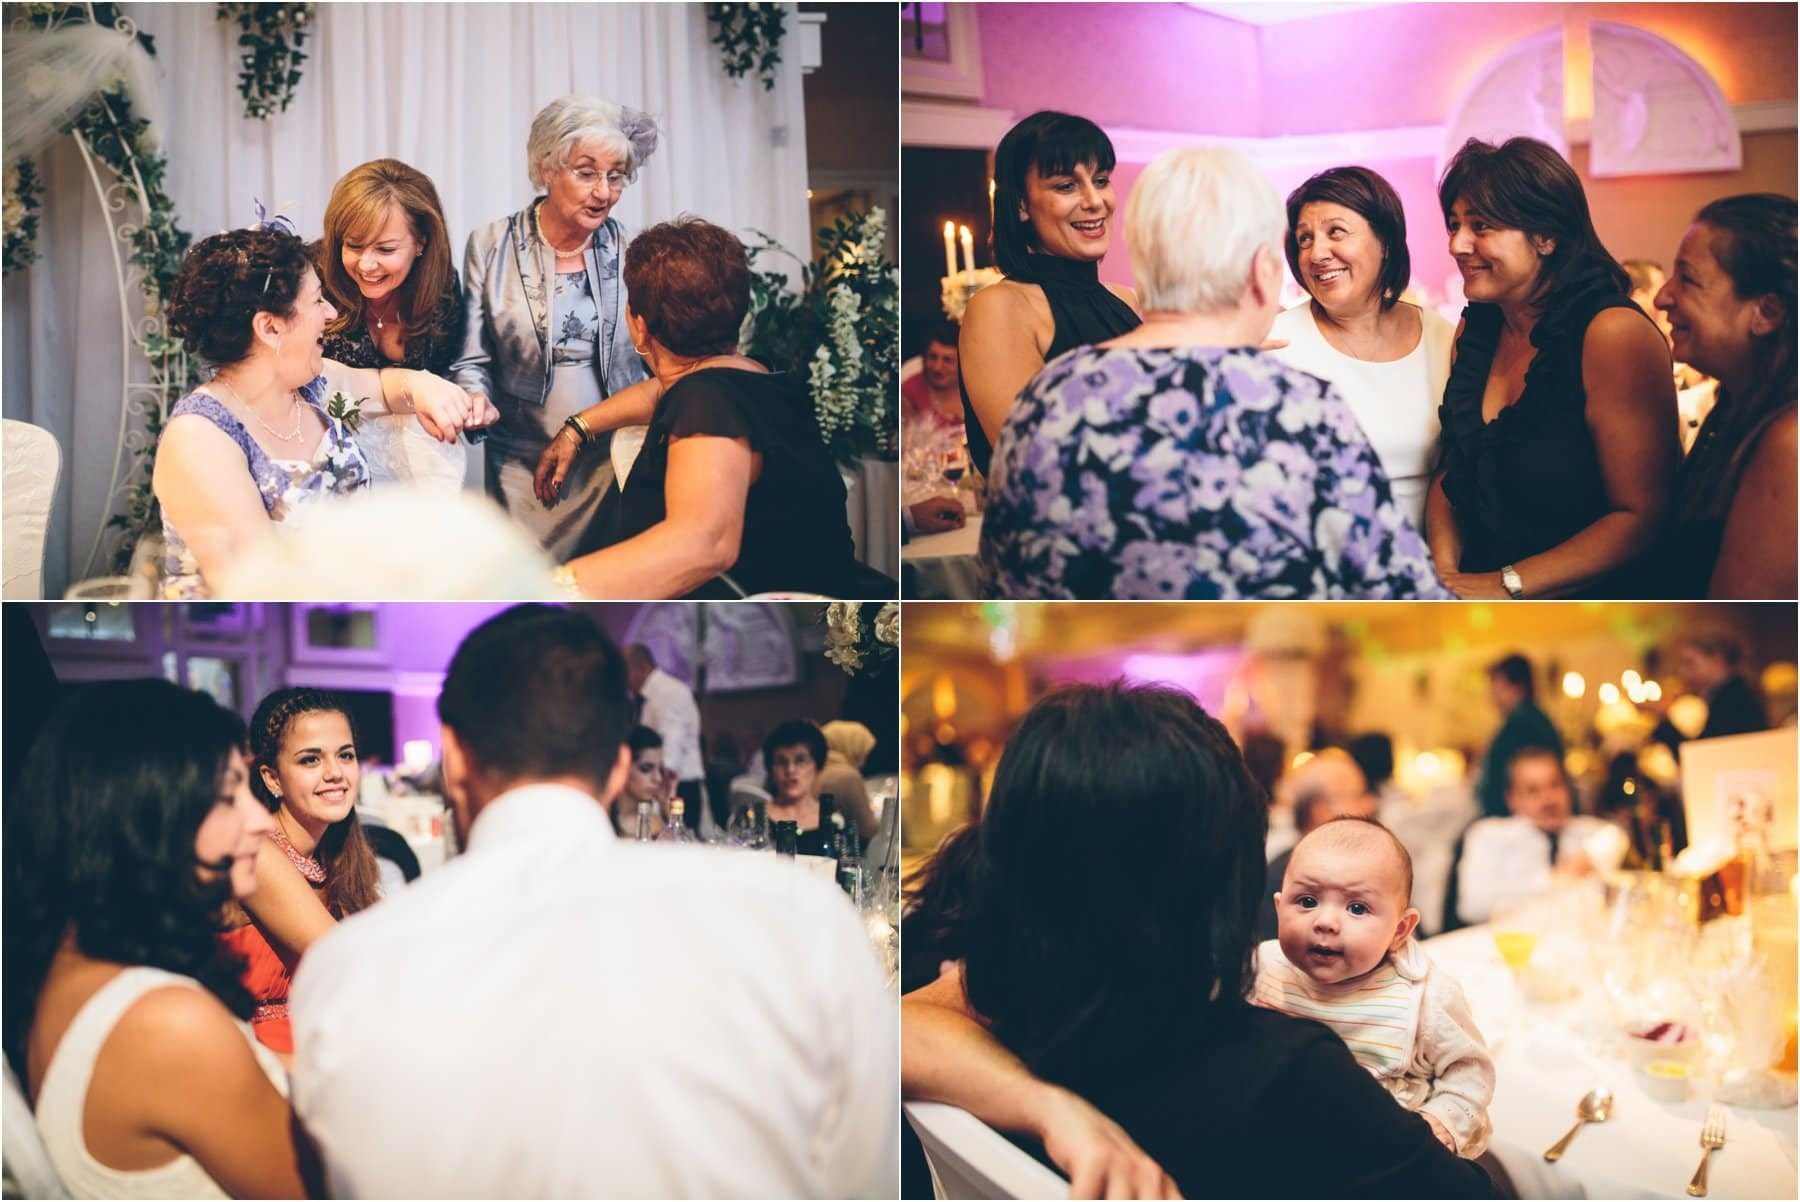 Midland_Manchester_Wedding_Photography_0099